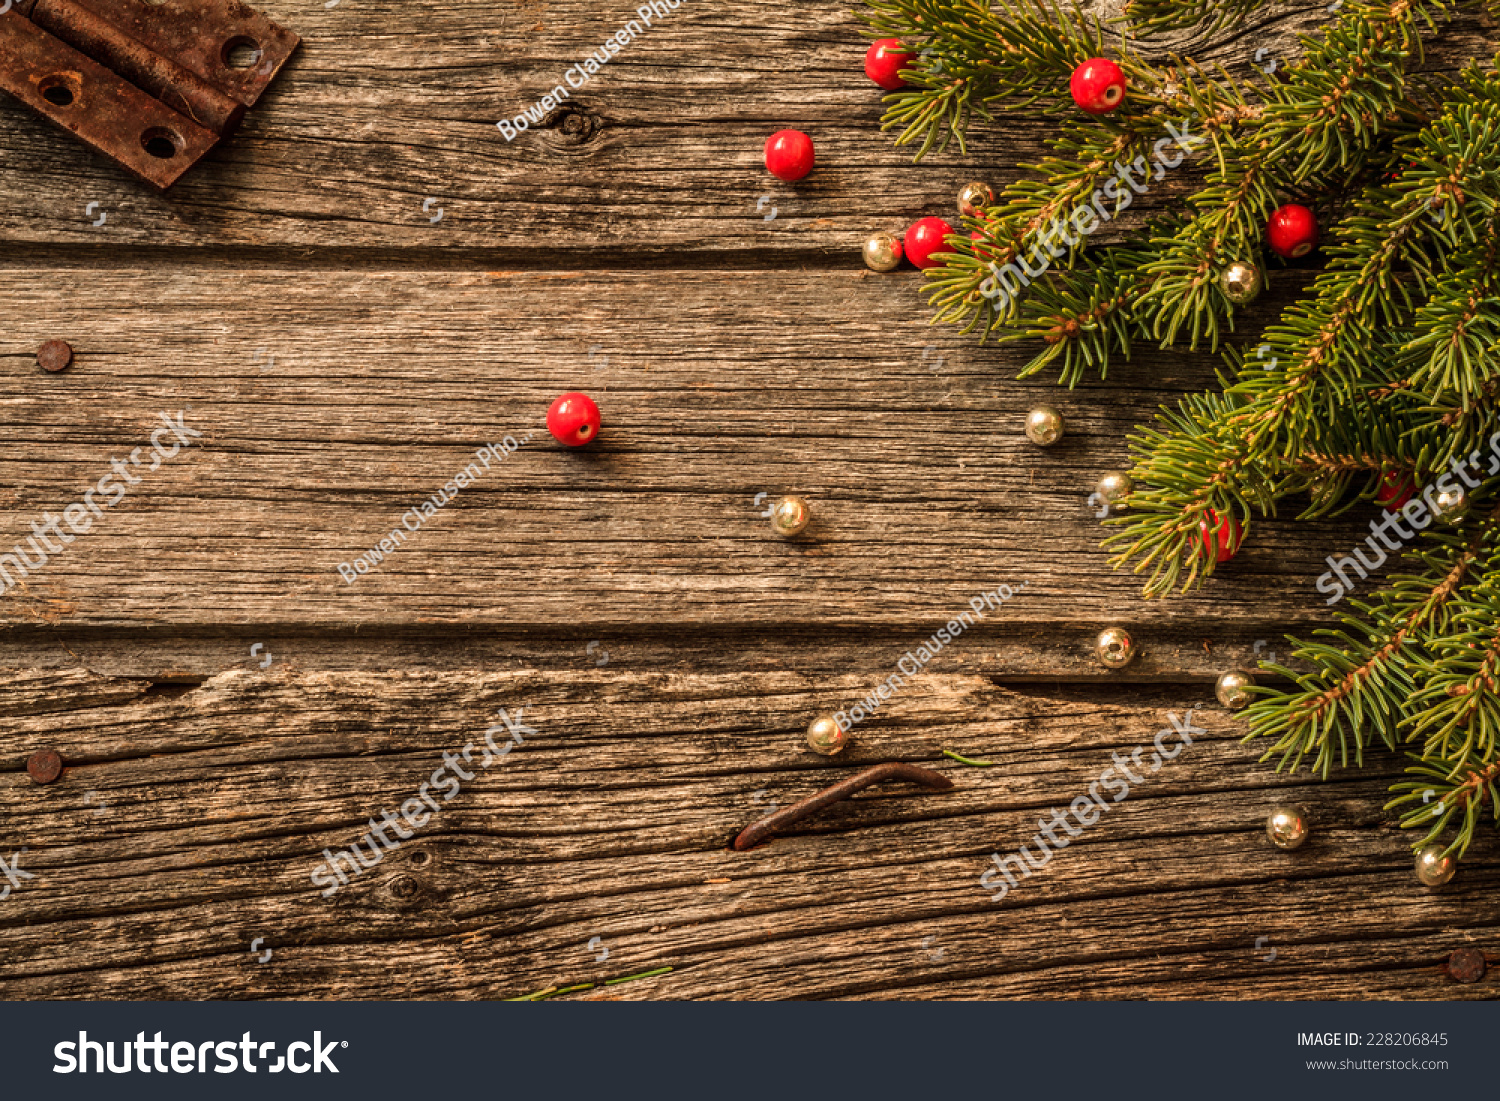 Rustic Christmas Background Aged Barn Wood Stockfoto (Lizenzfrei ...